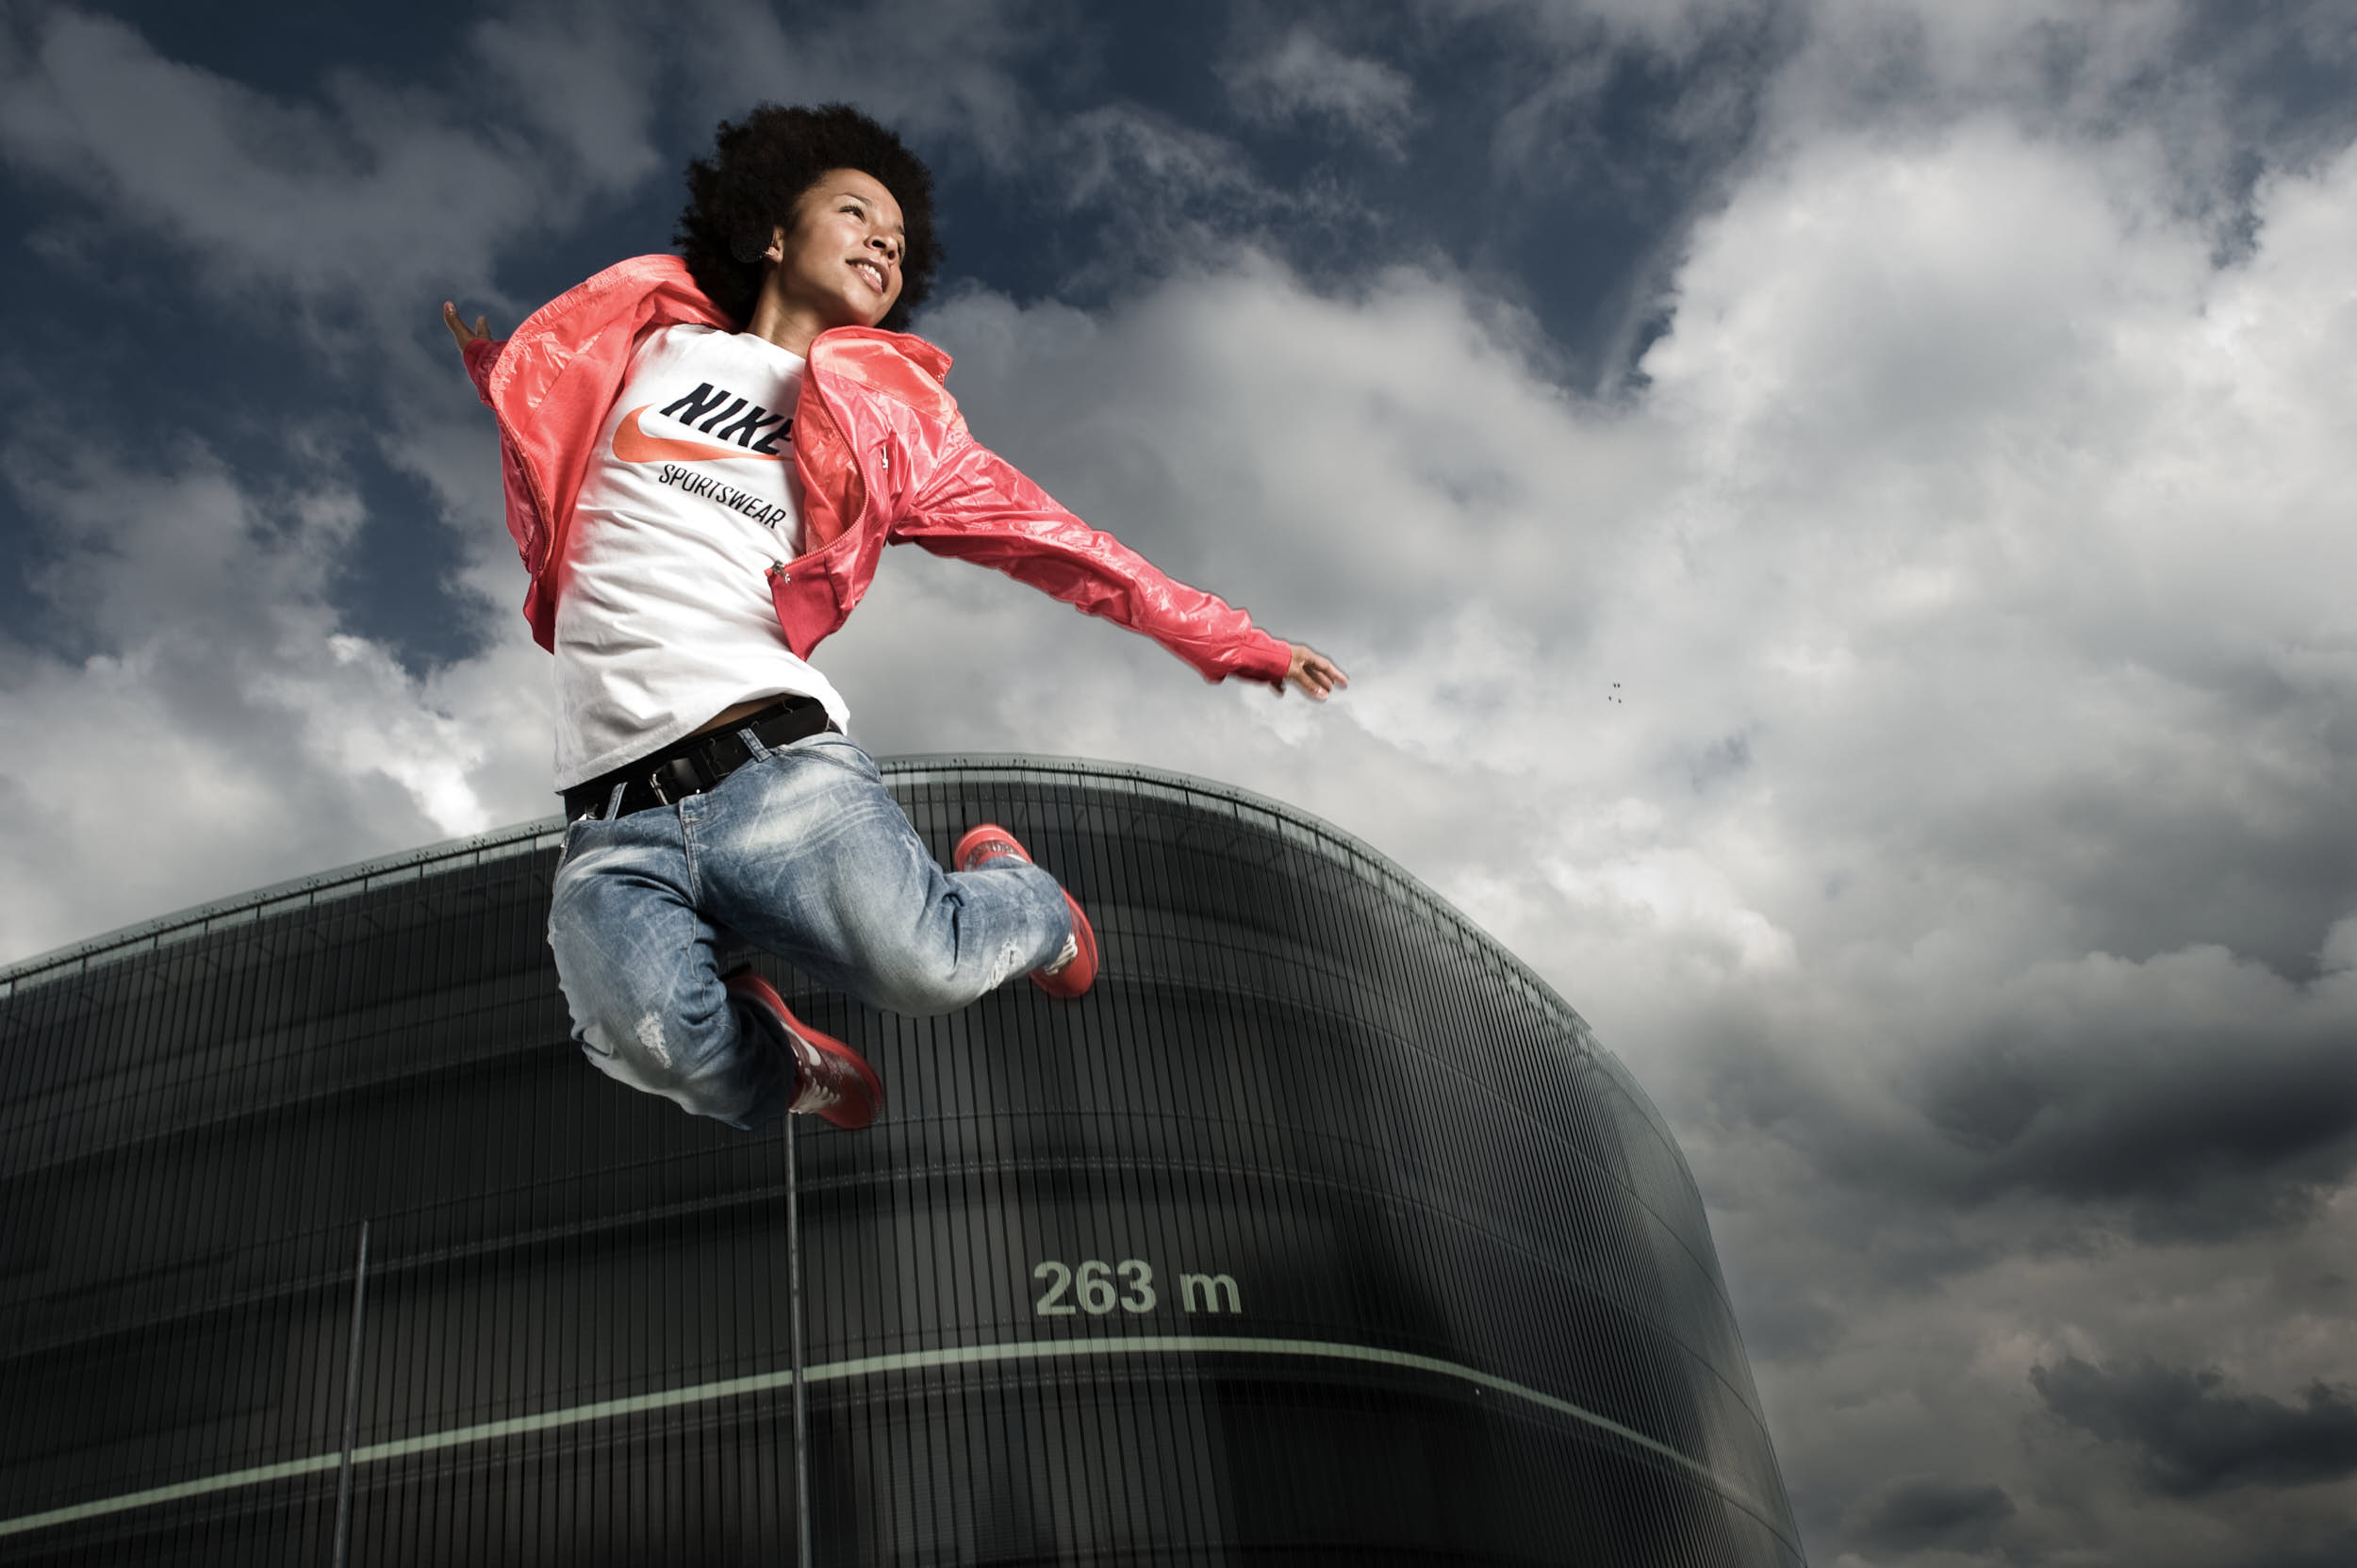 Dancer in sport apparel campaign jumping in front of a modern minimal architecture.